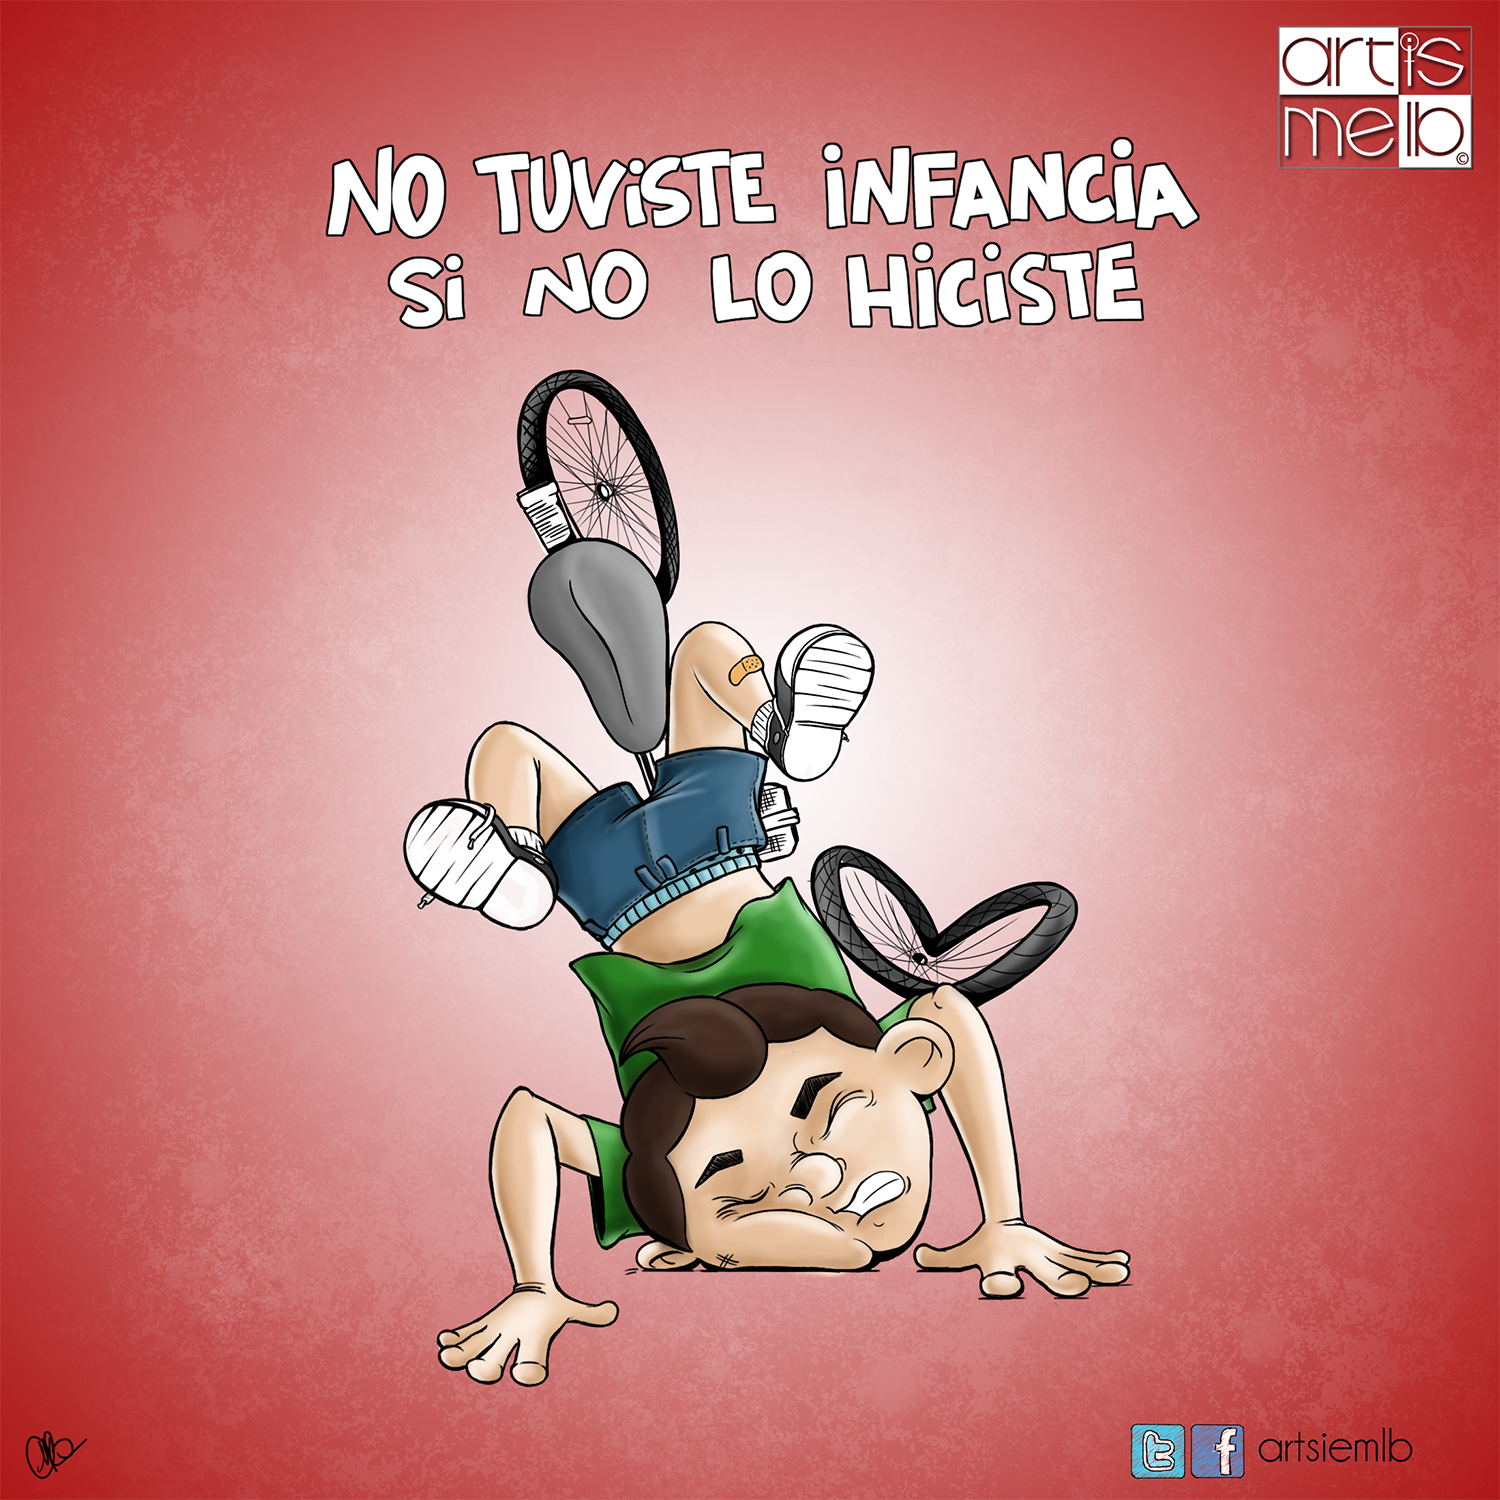 (2013.12.10) notuvisteinfancia04.png